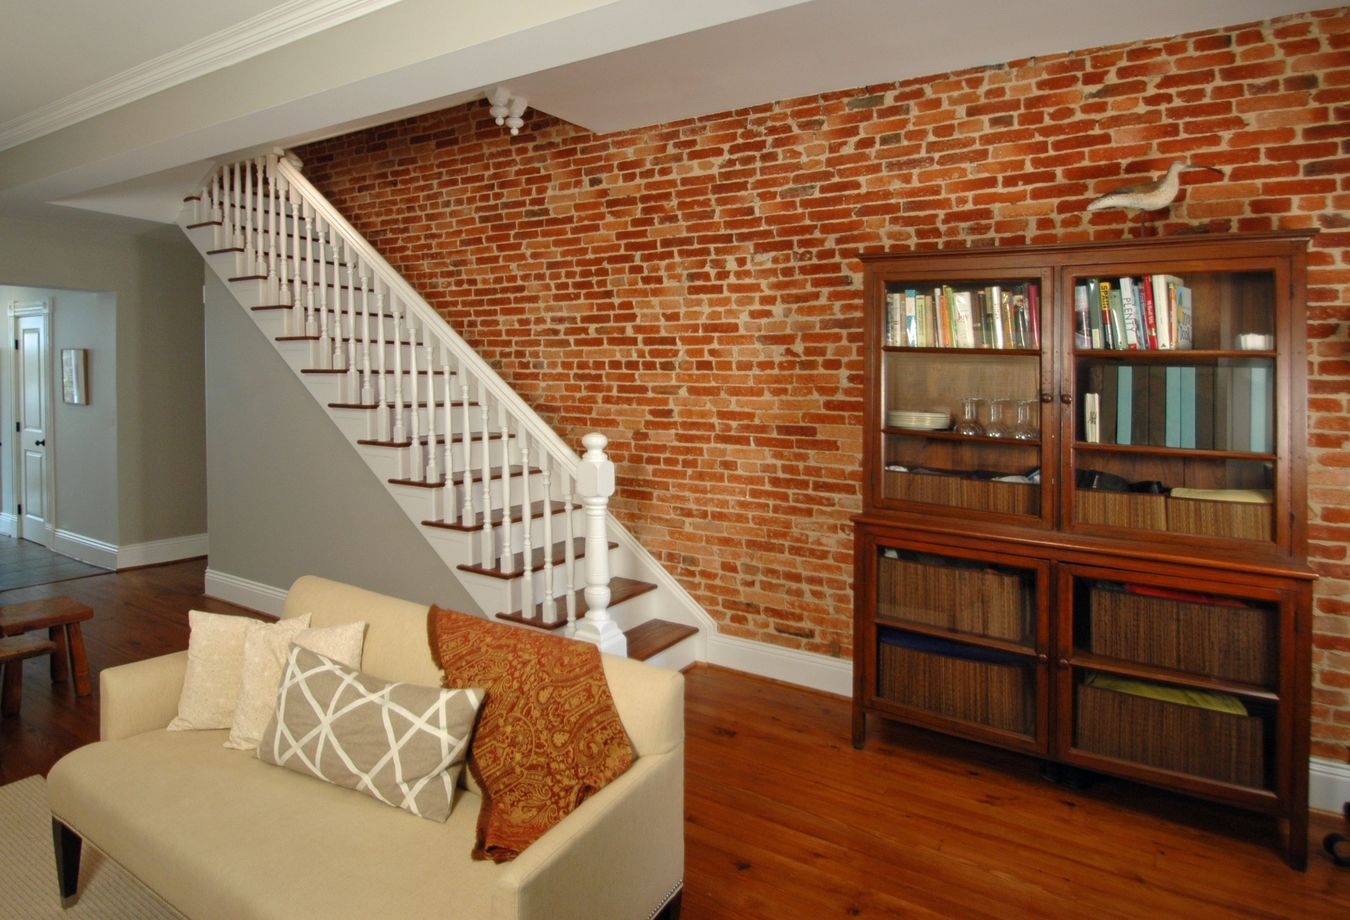 Wall Design Build Inc : Classy interiors with exposed brick porch advice